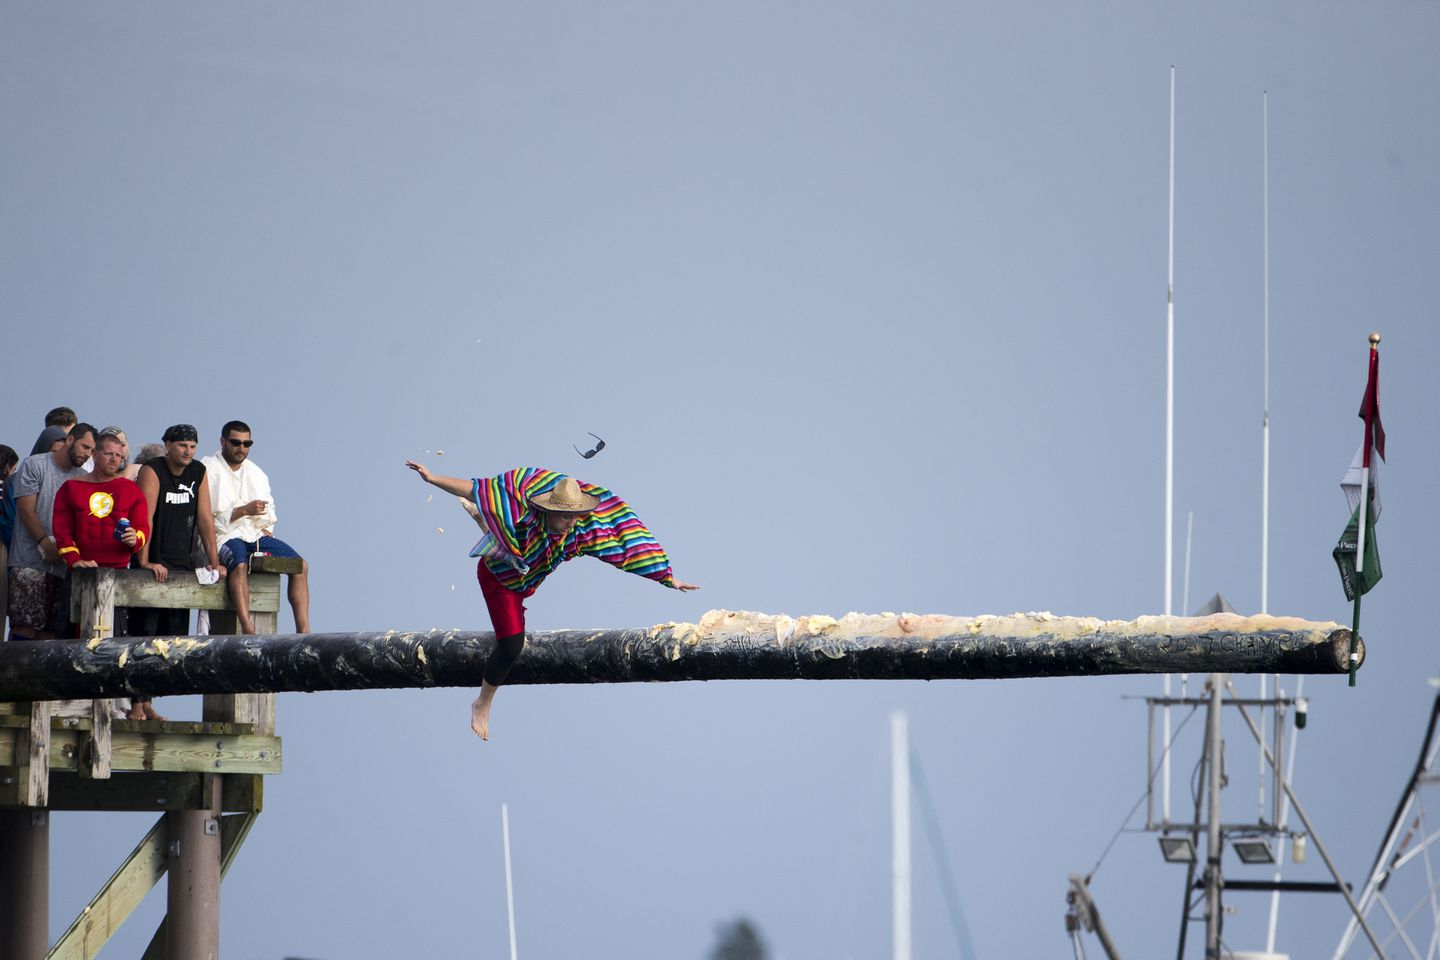 A man slips and falls off the greasy pole during the competition Sunday.